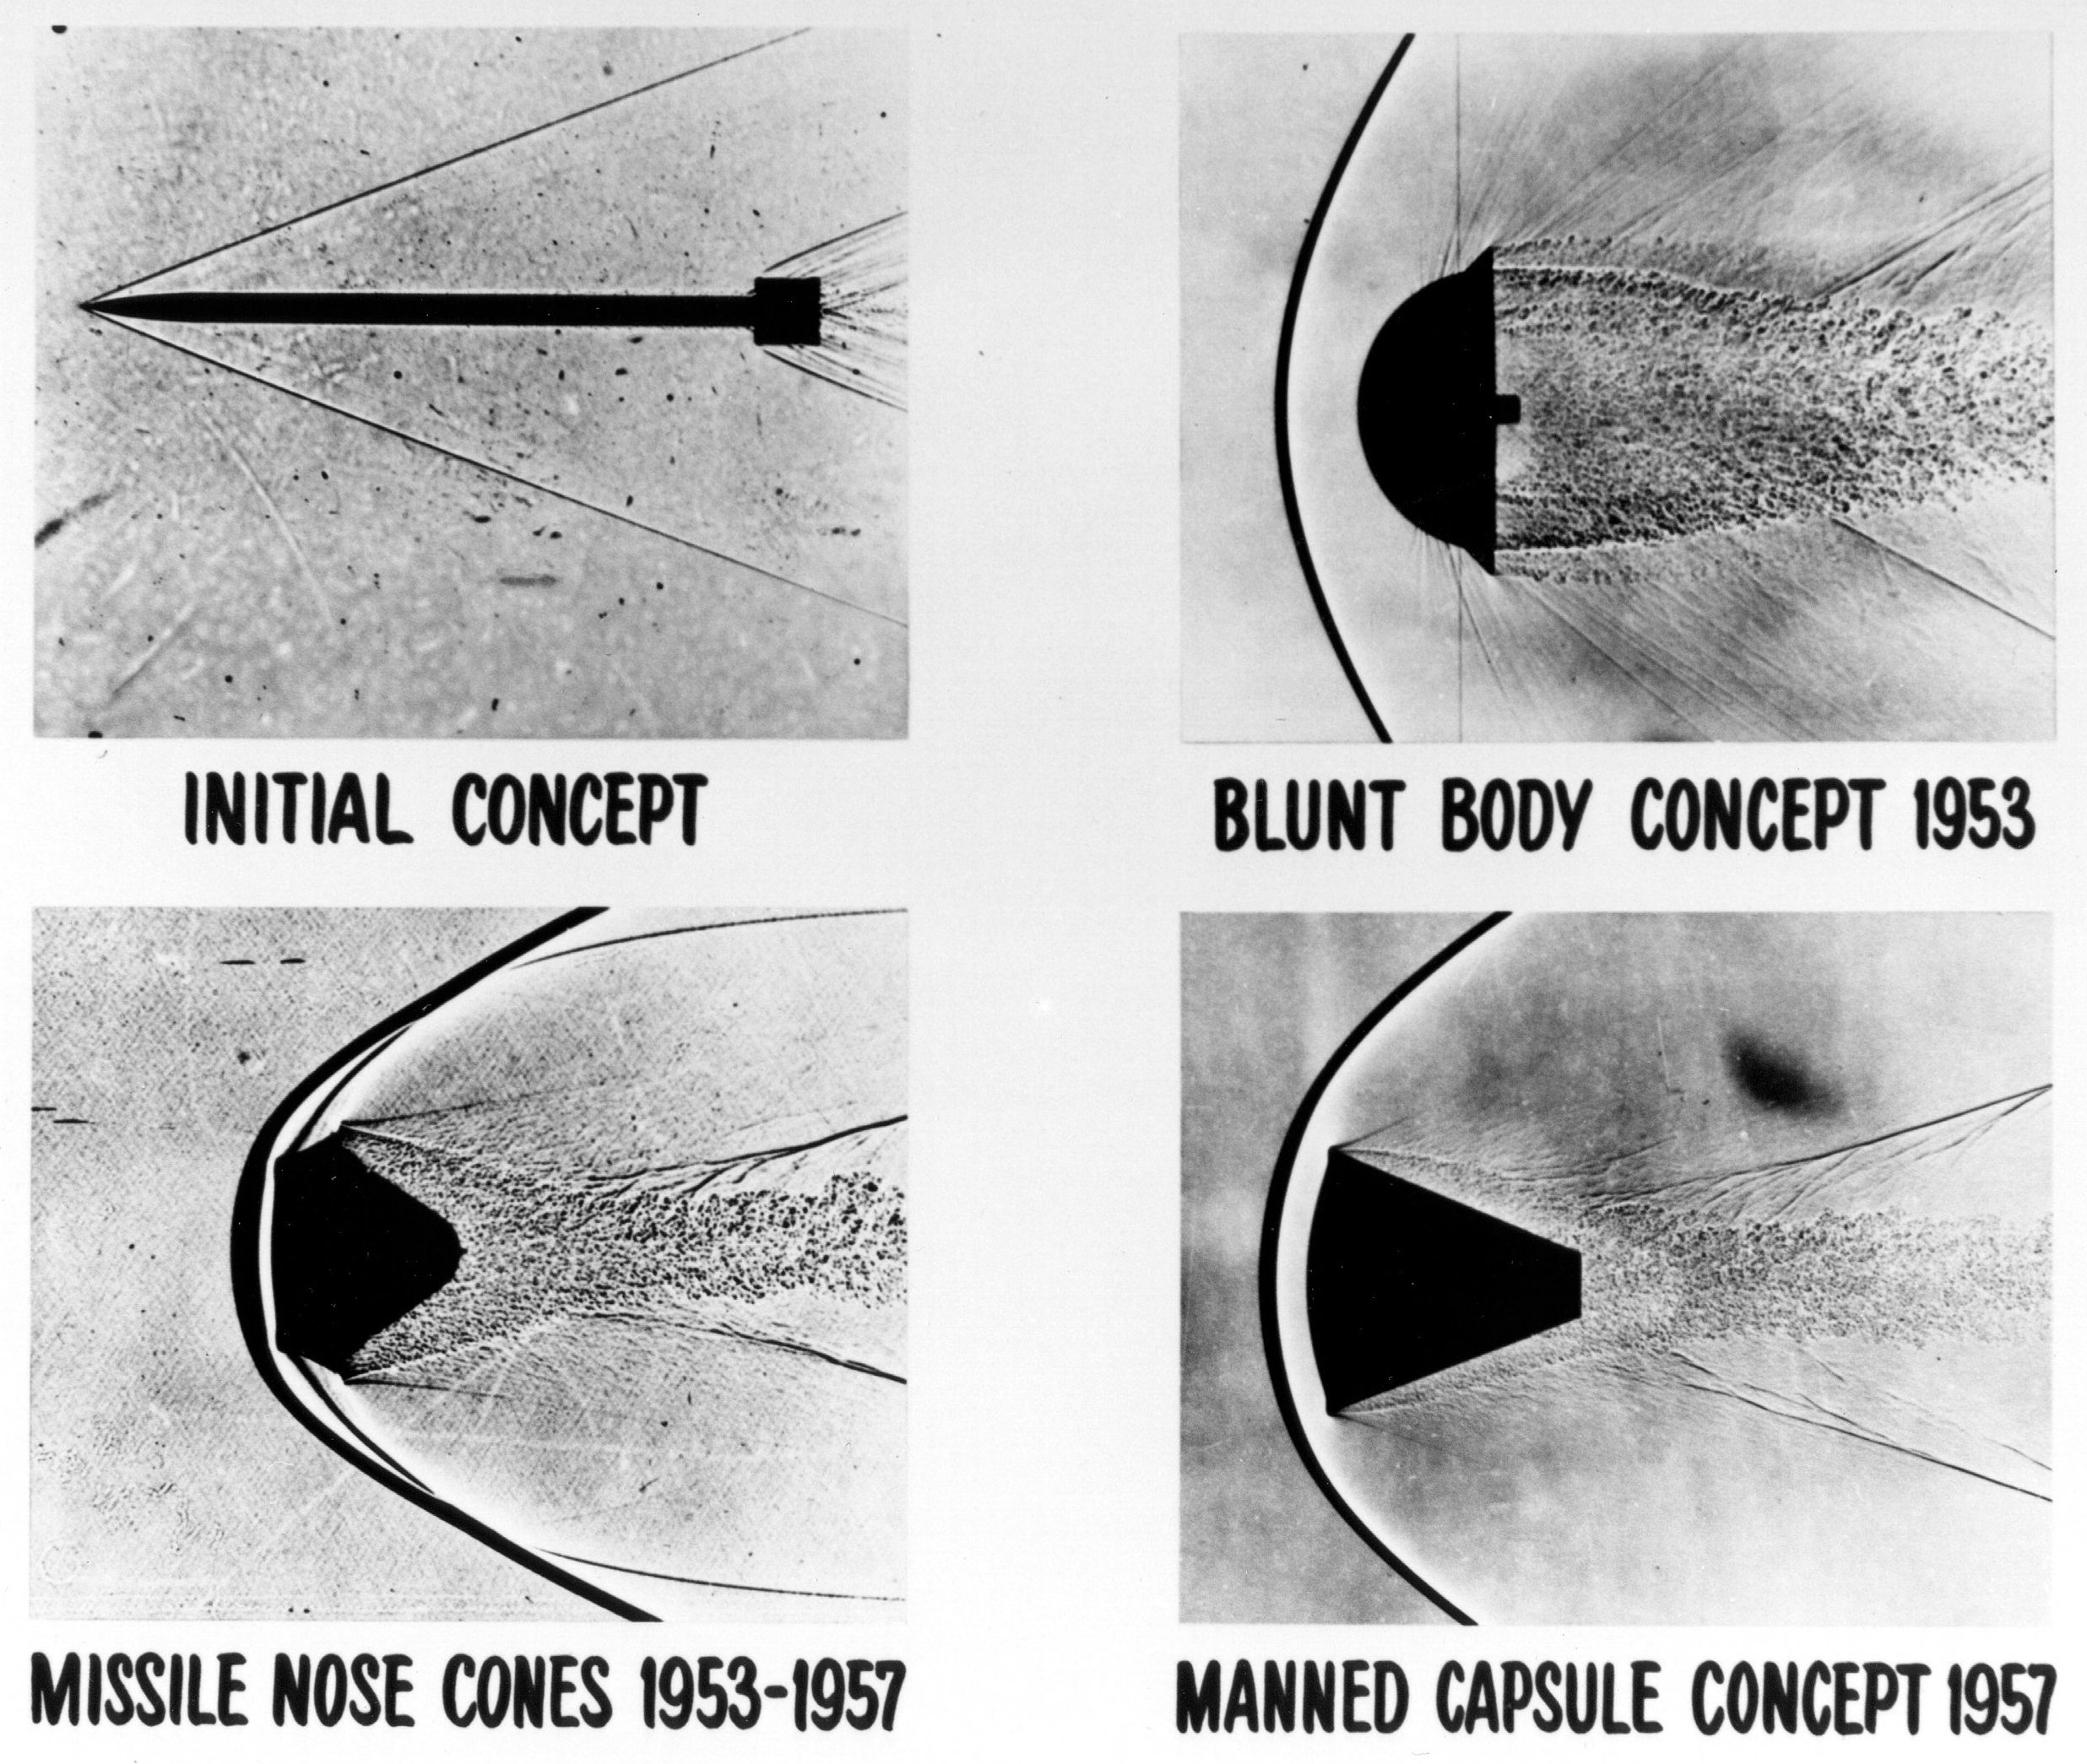 https://upload.wikimedia.org/wikipedia/commons/2/23/Blunt_body_reentry_shapes.png